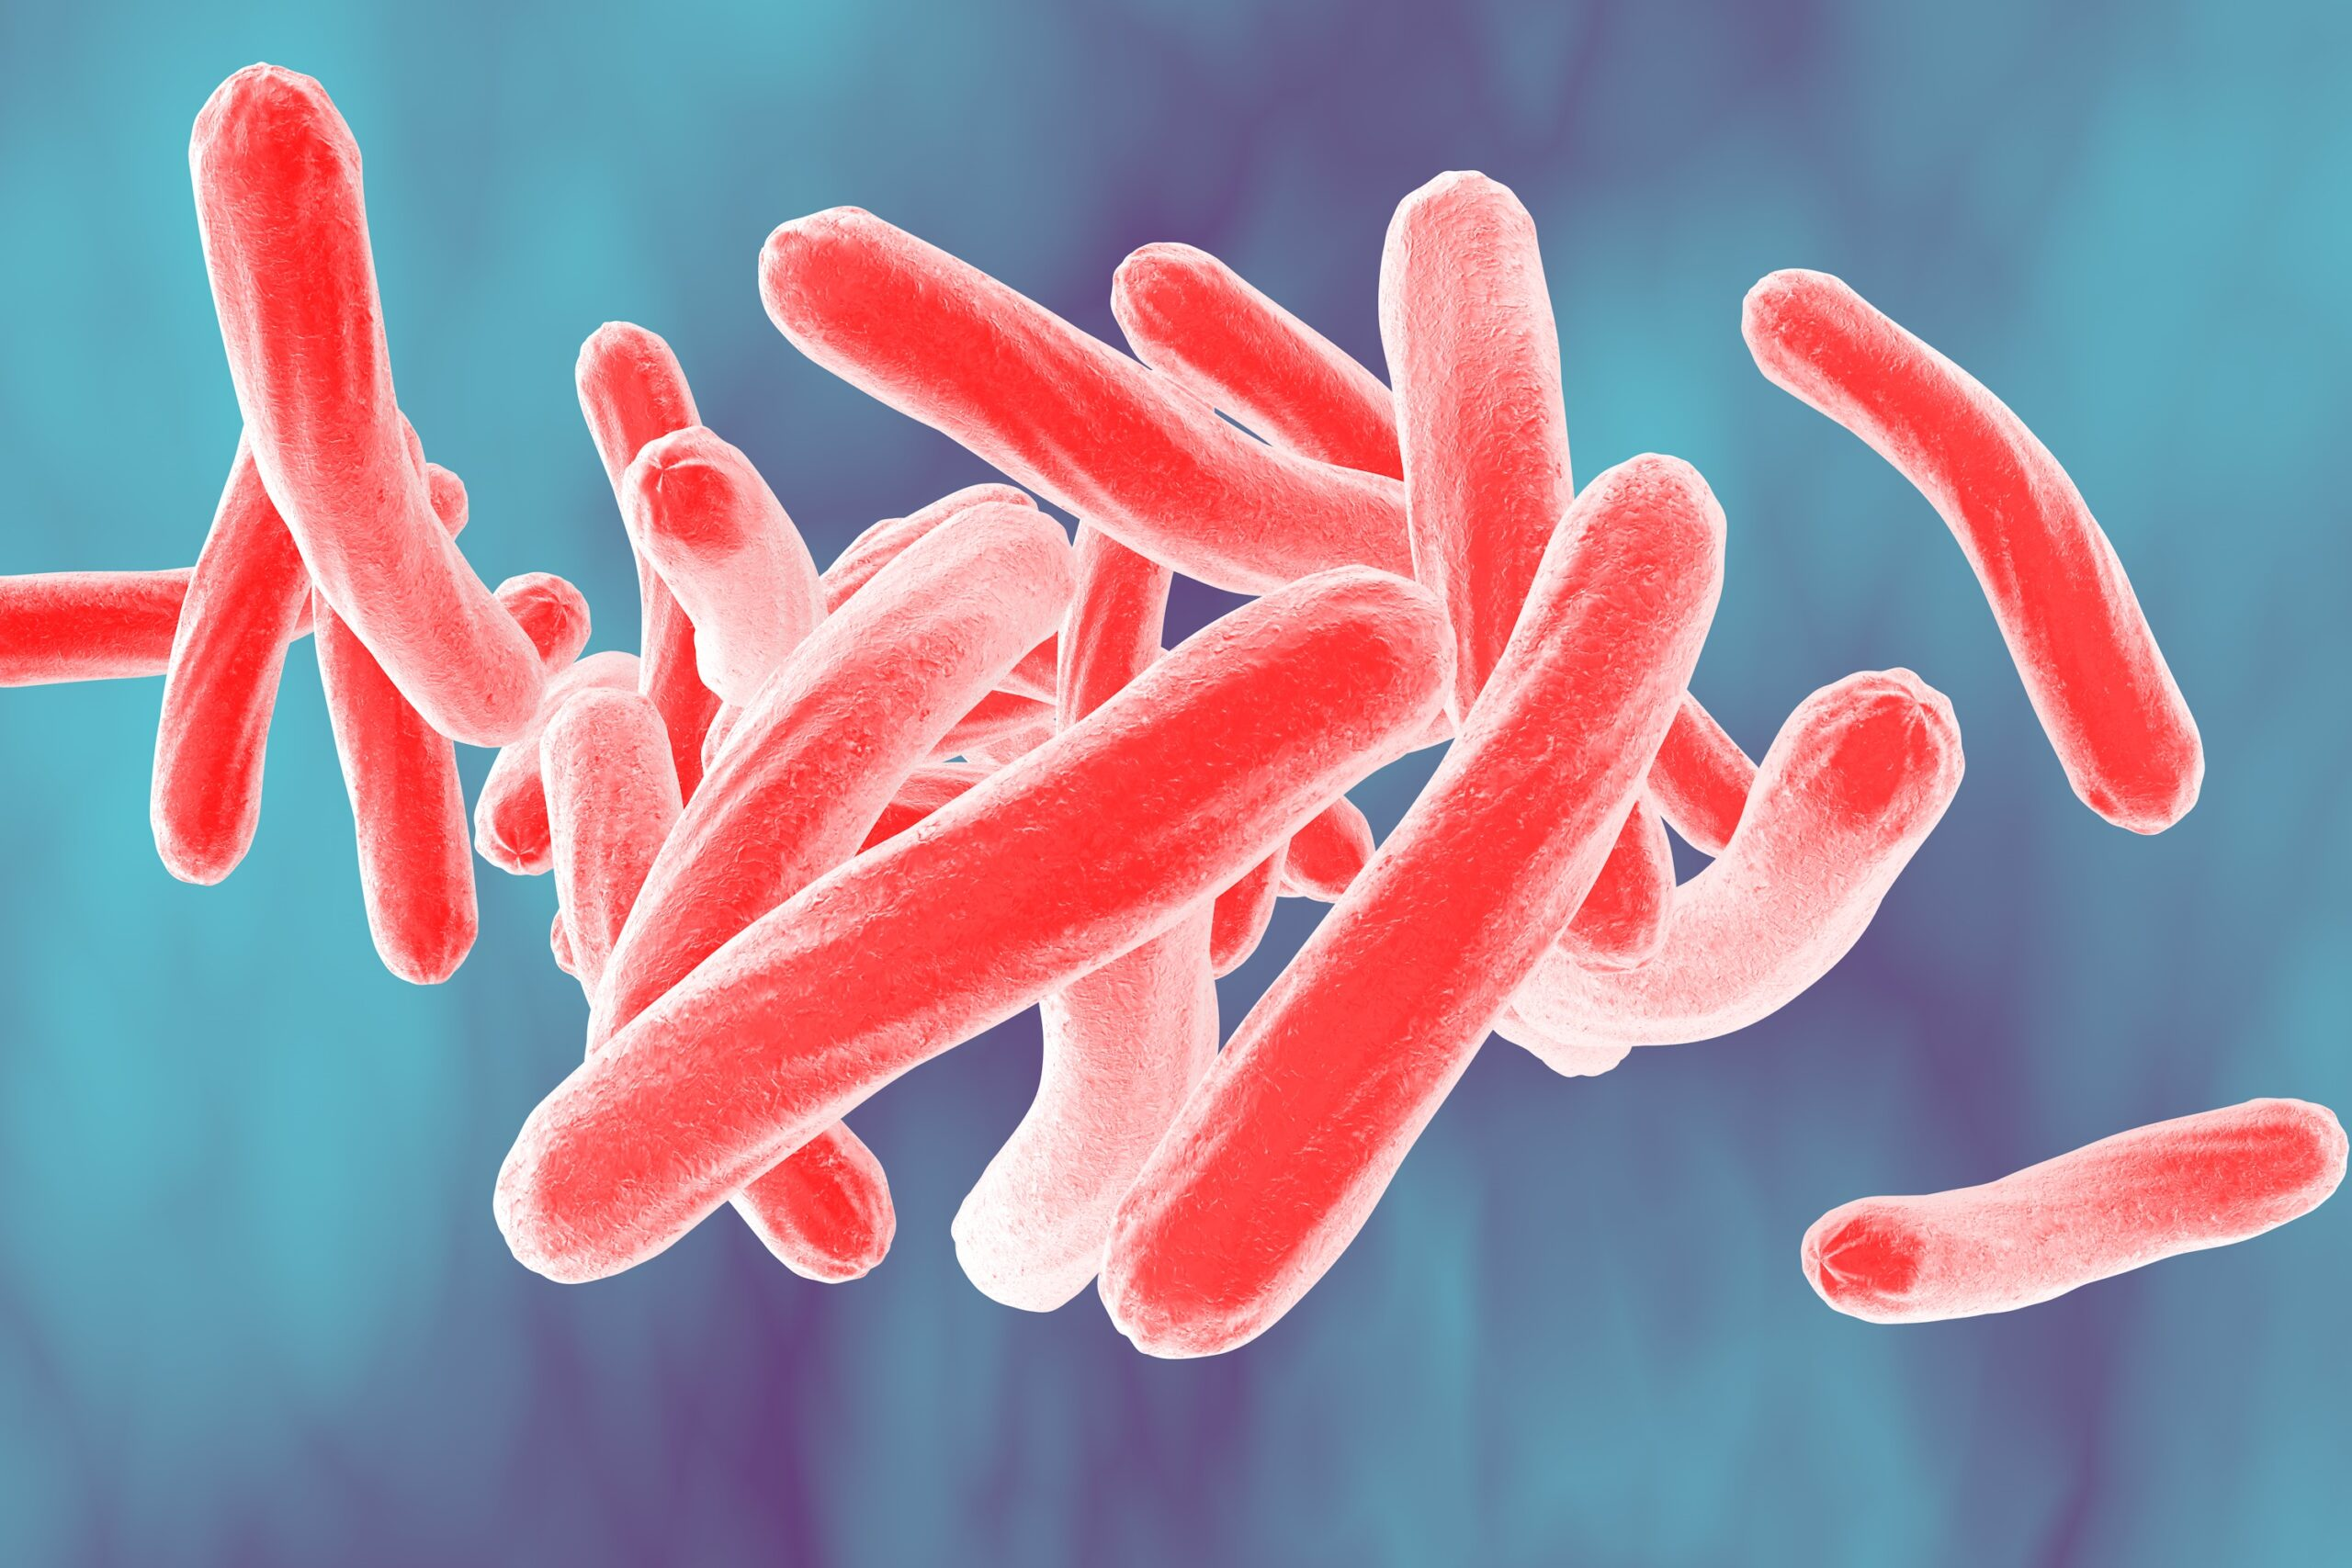 Disease Review: Tuberculosis